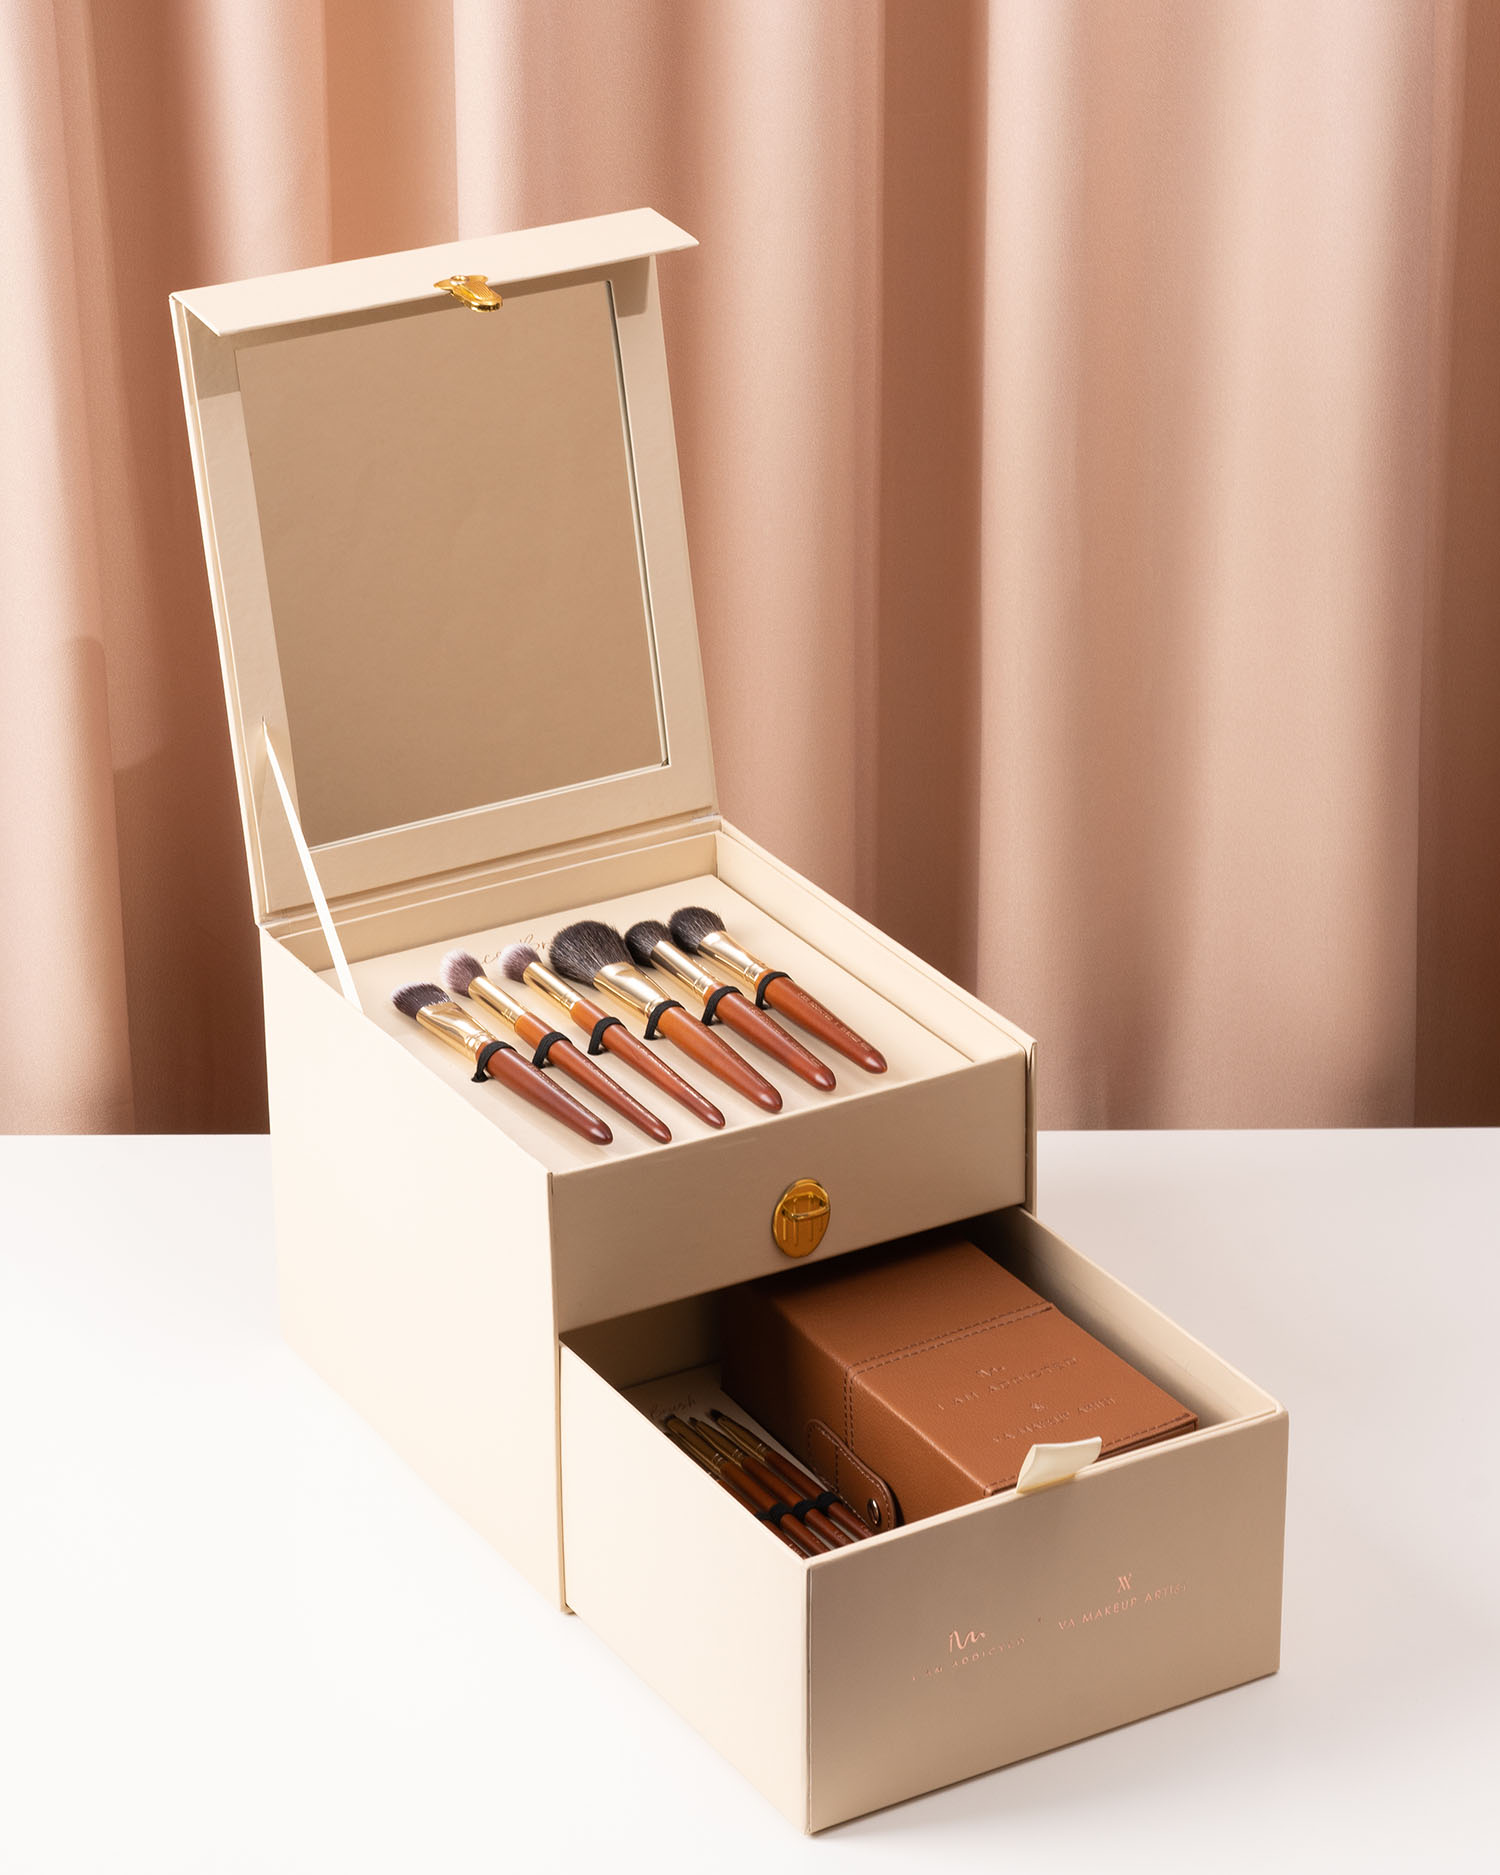 VA Artistry Exclusive Box + Brush Set